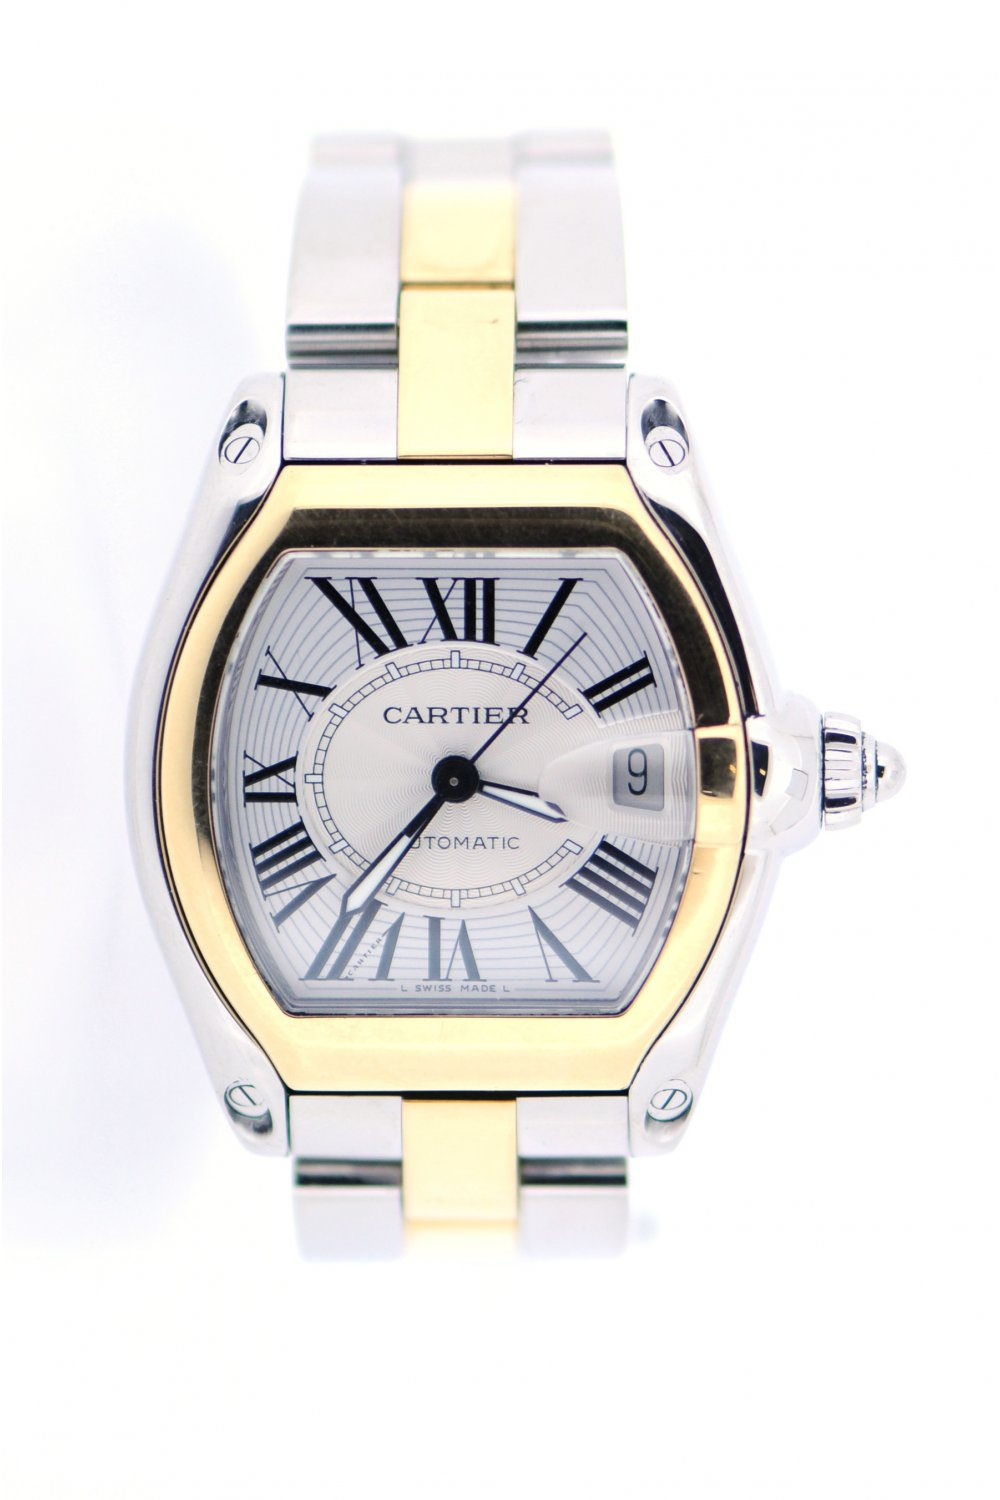 cartier roadster miltons secondhand cartier watches. Black Bedroom Furniture Sets. Home Design Ideas